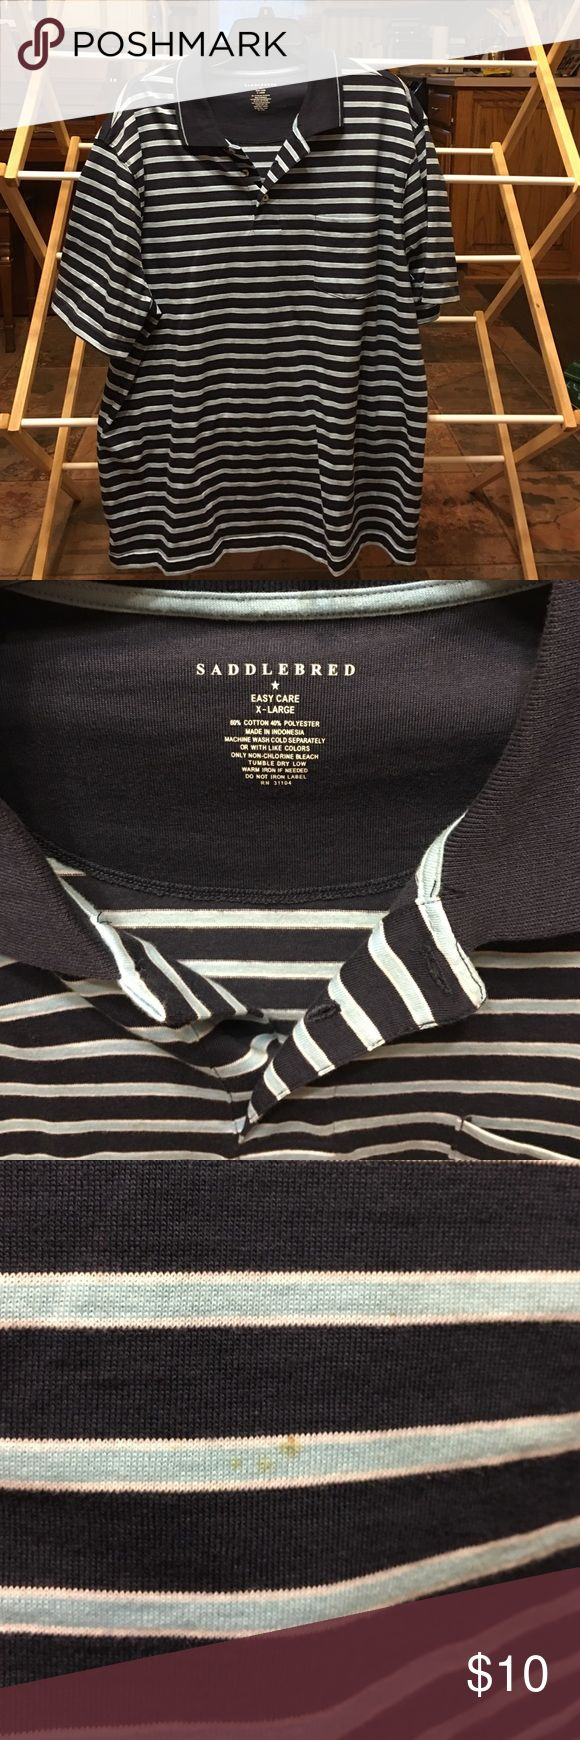 Saddlebred Polo Shirt with pocket XL Saddlebred Polo Shirt with pocket XL, worn once. Navy blue, light blue and white stripe. Very small stain as shown in photo, barely noticeable. Smoke free home. Saddlebred Shirts Polos